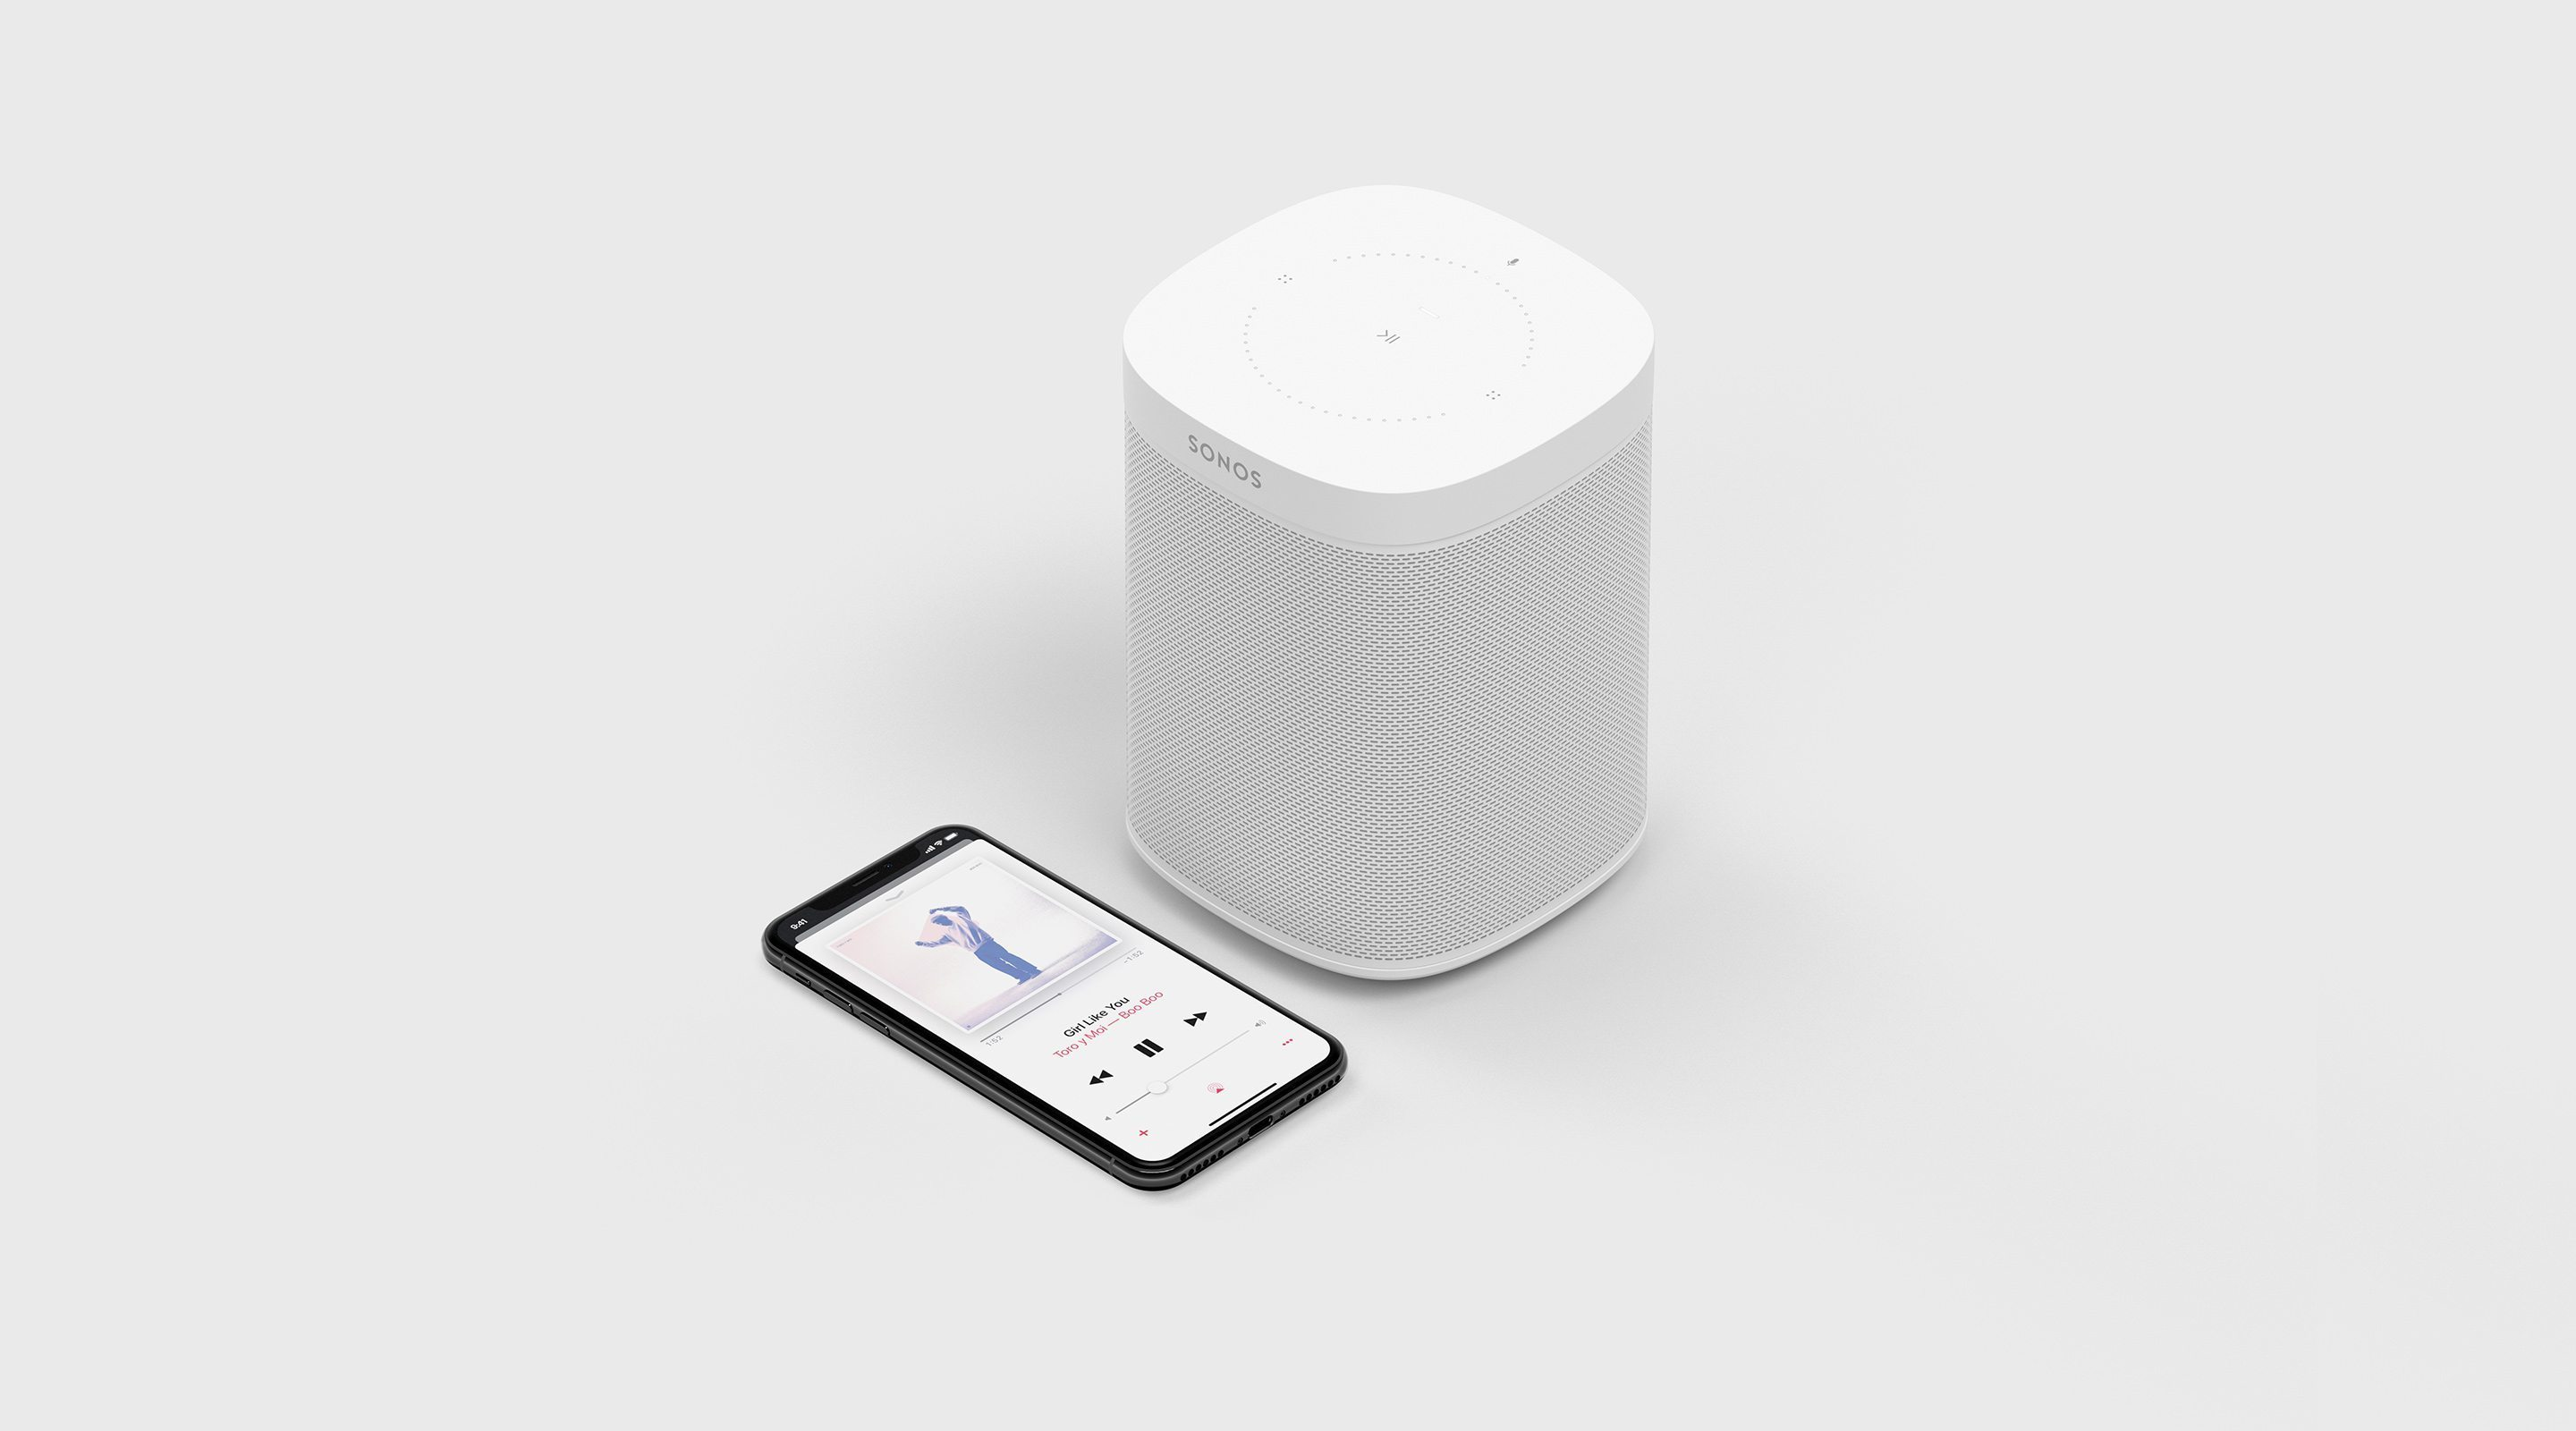 Sonos One AirPlay 2